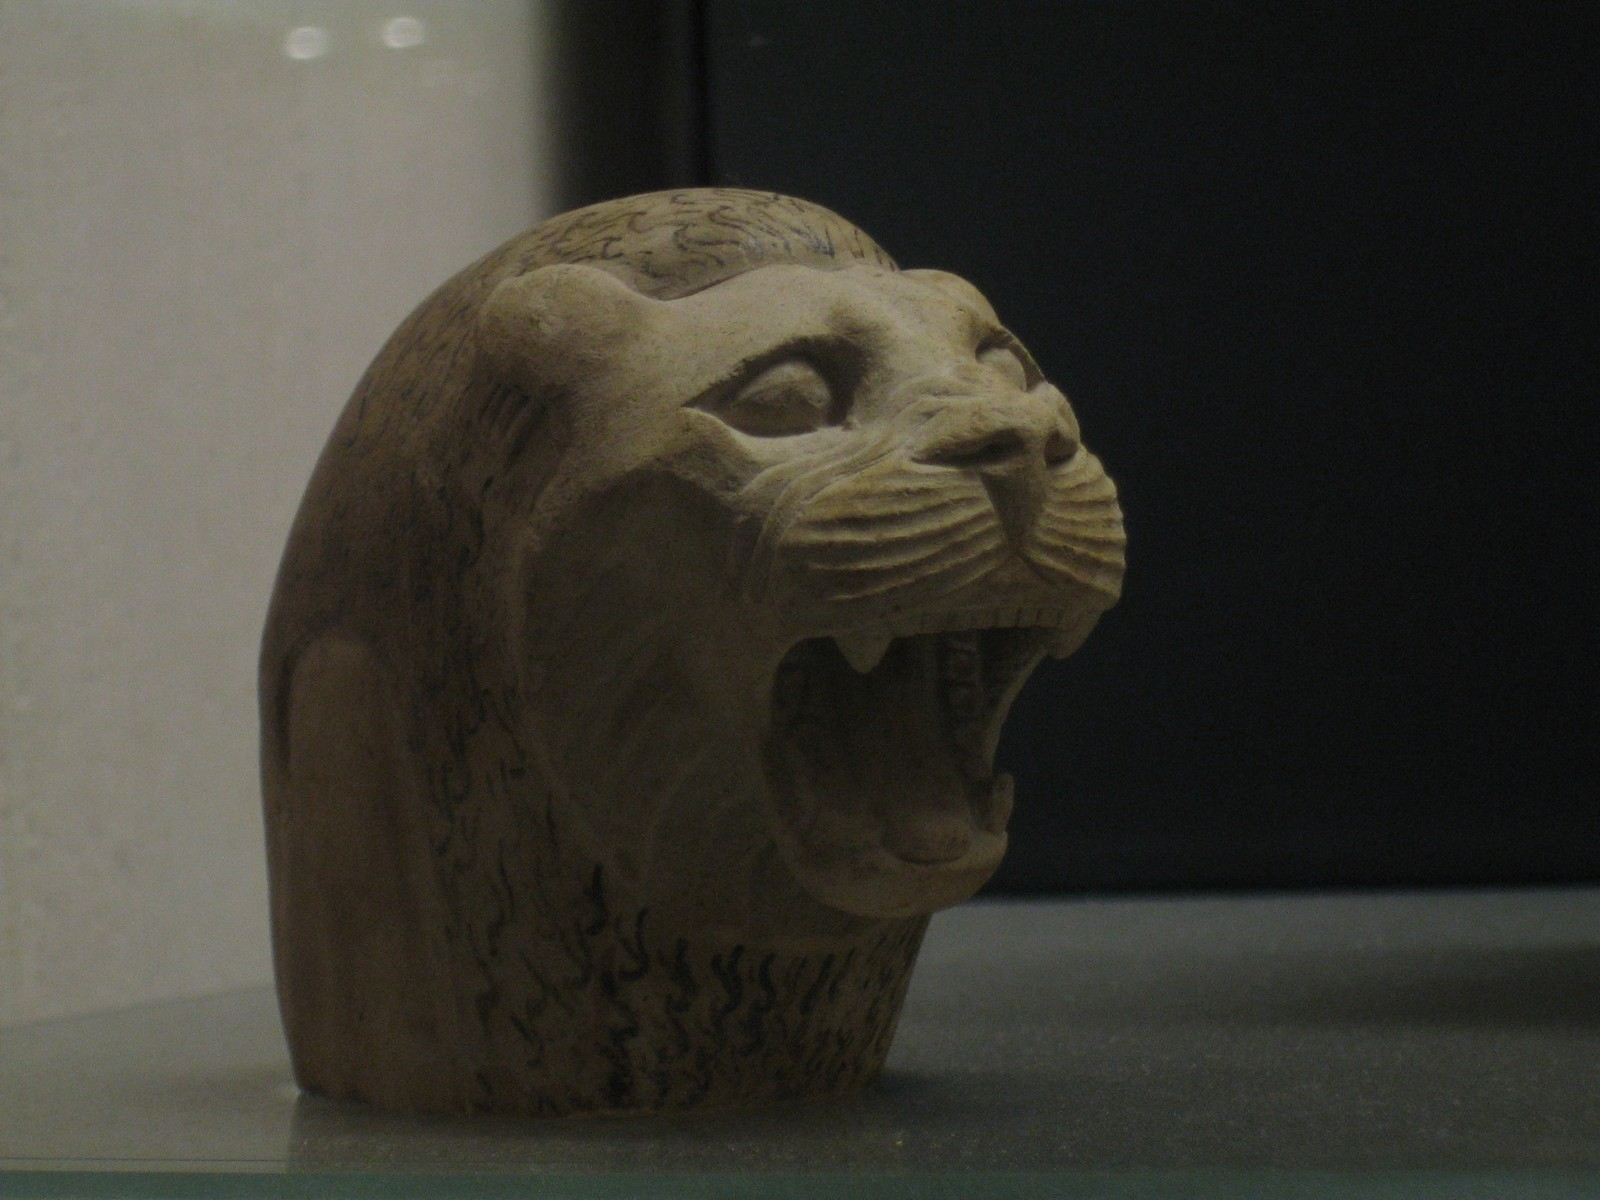 Louvre_egyptos_28.jpg